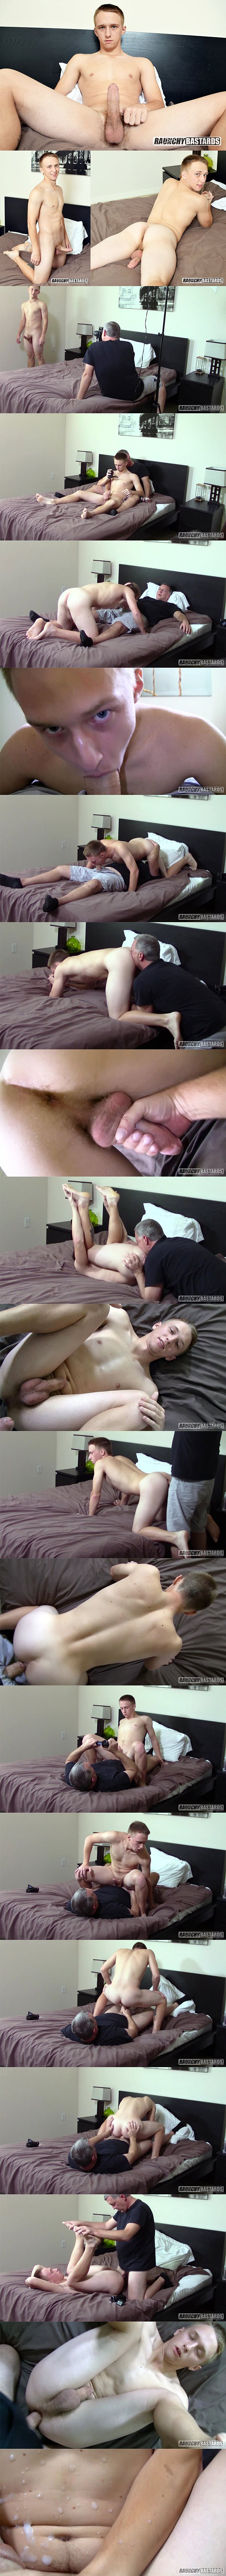 Clay Barebacks Logan Pine in Straight But Curious and Broke Enough at Raunchybastards 02